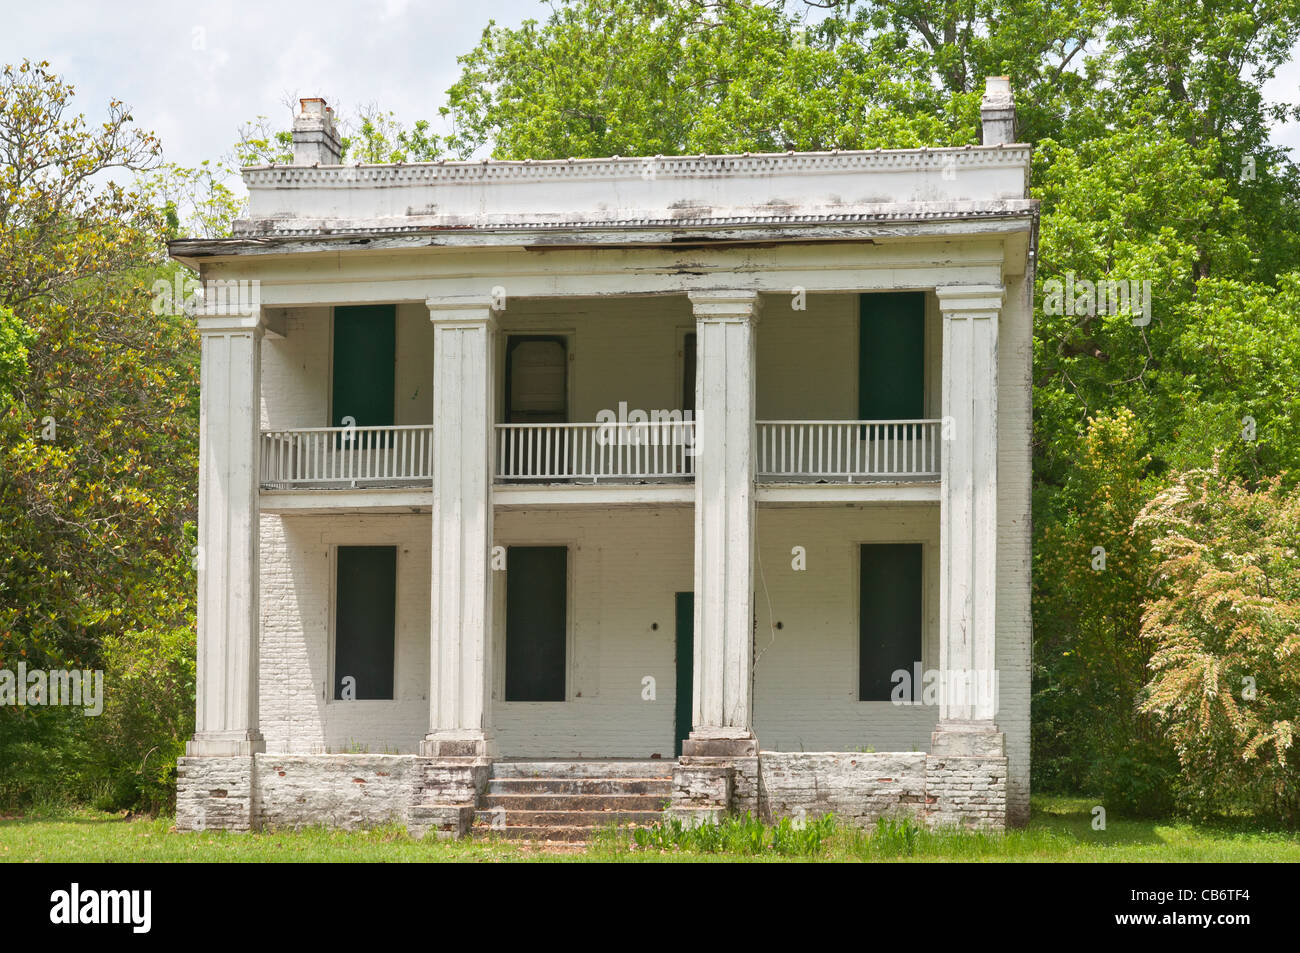 Alabama, Old Cahawba, state capital 1820-1826, became a ghost town shortly after the Civil War, structure from Kirk - Stock Image